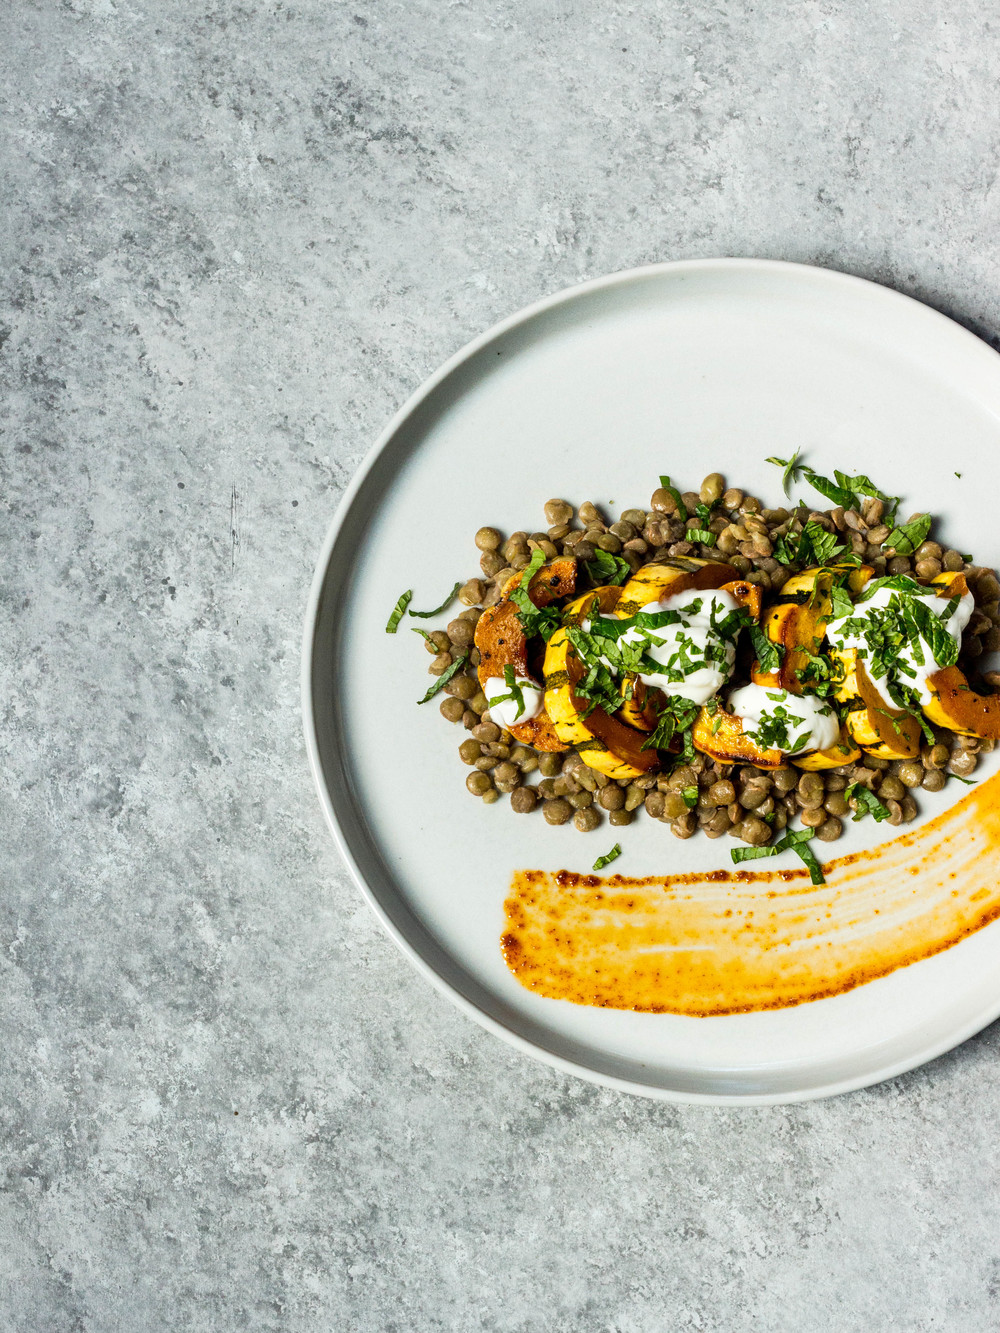 Harissa-Cumin Roasted Delicata Squash over Lentils with Yogurt + Mint (1 of 1).jpg